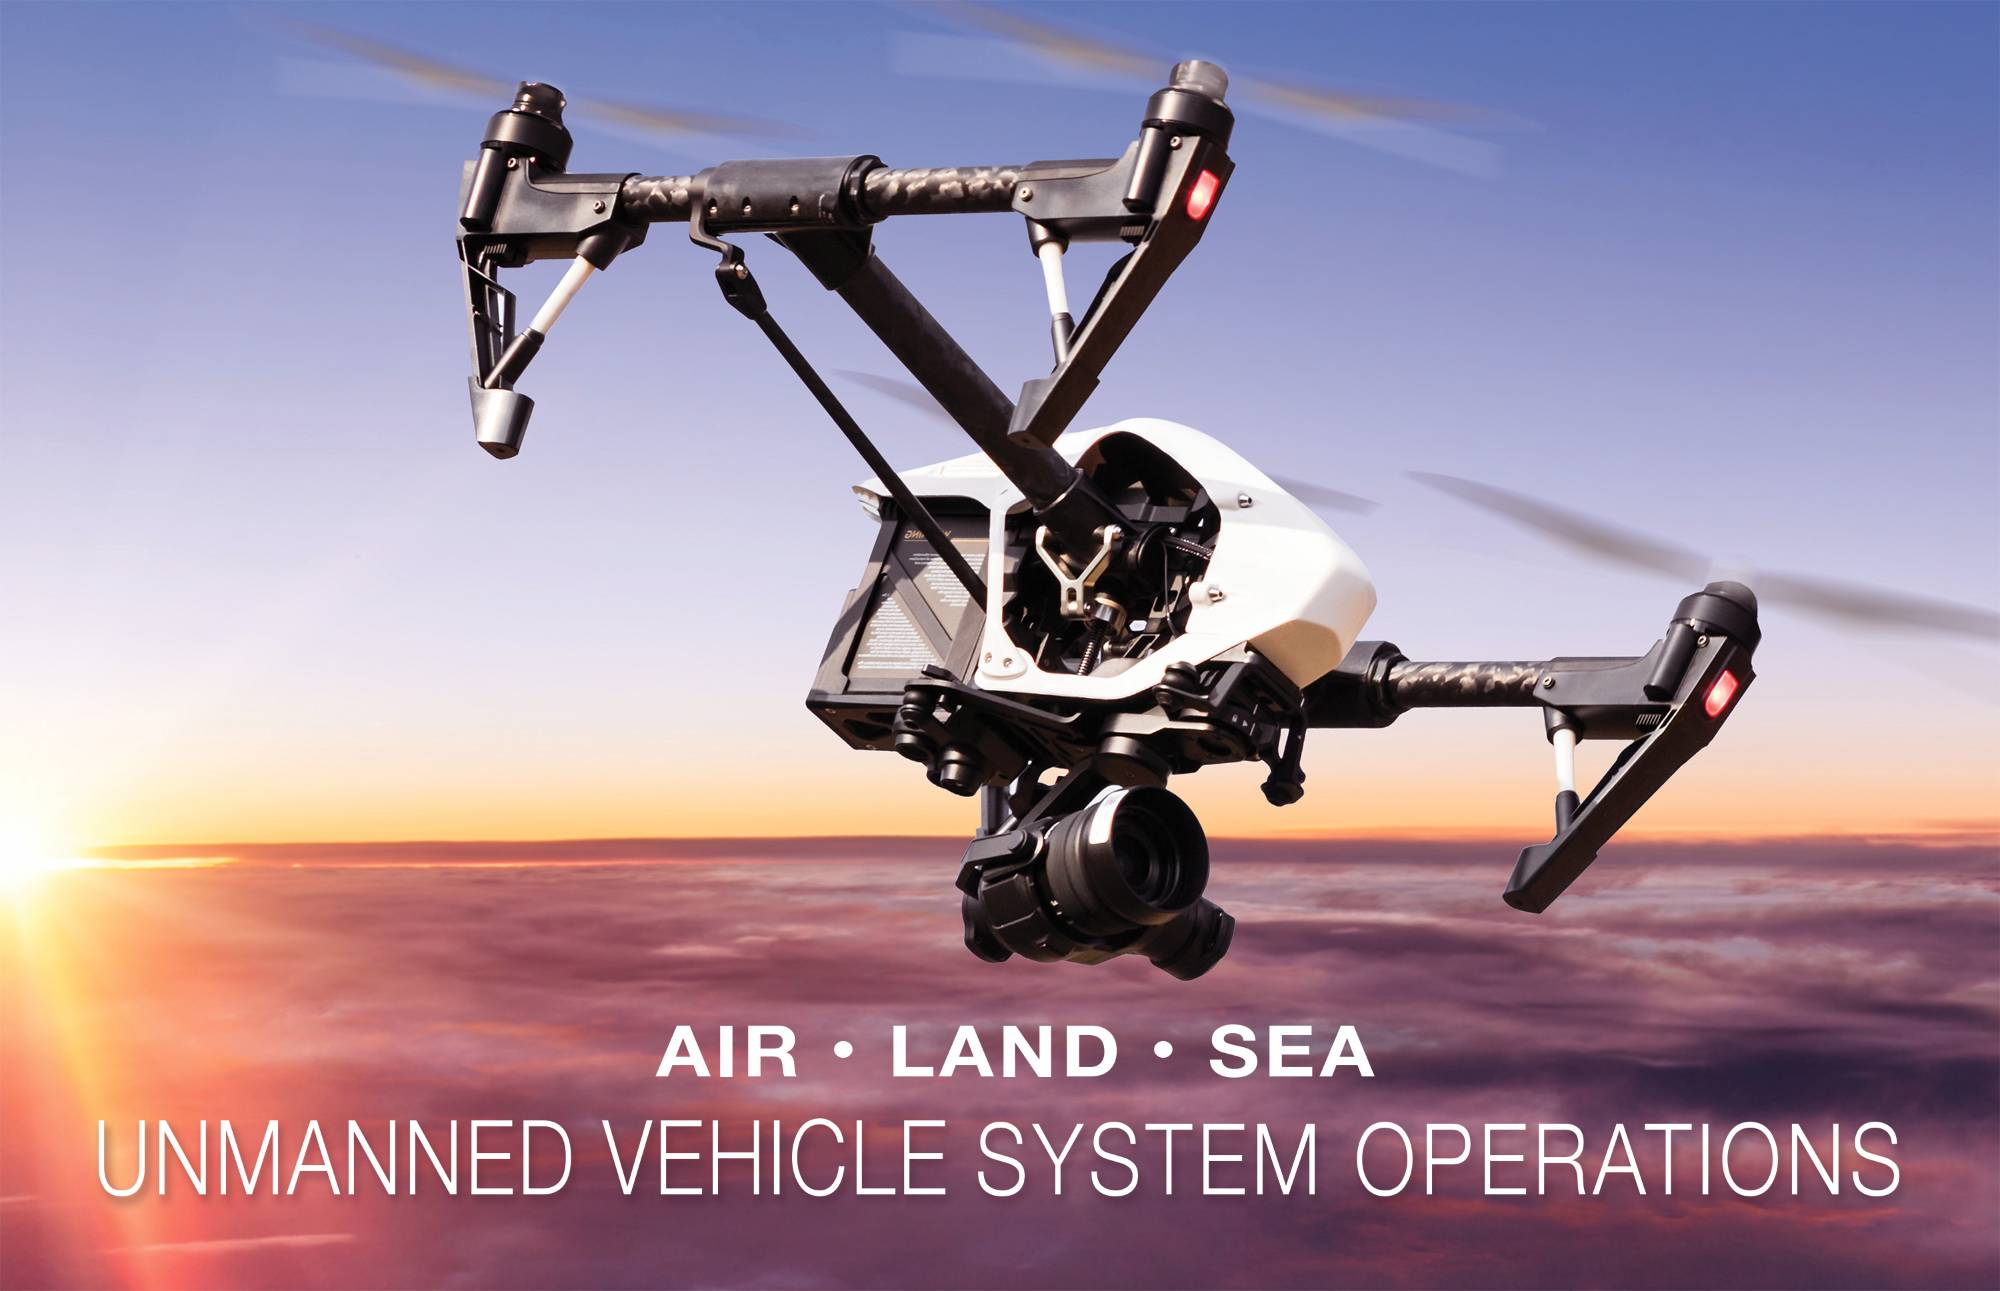 Unmanned Vehicle Systems Operations program at Gulf Coast State College